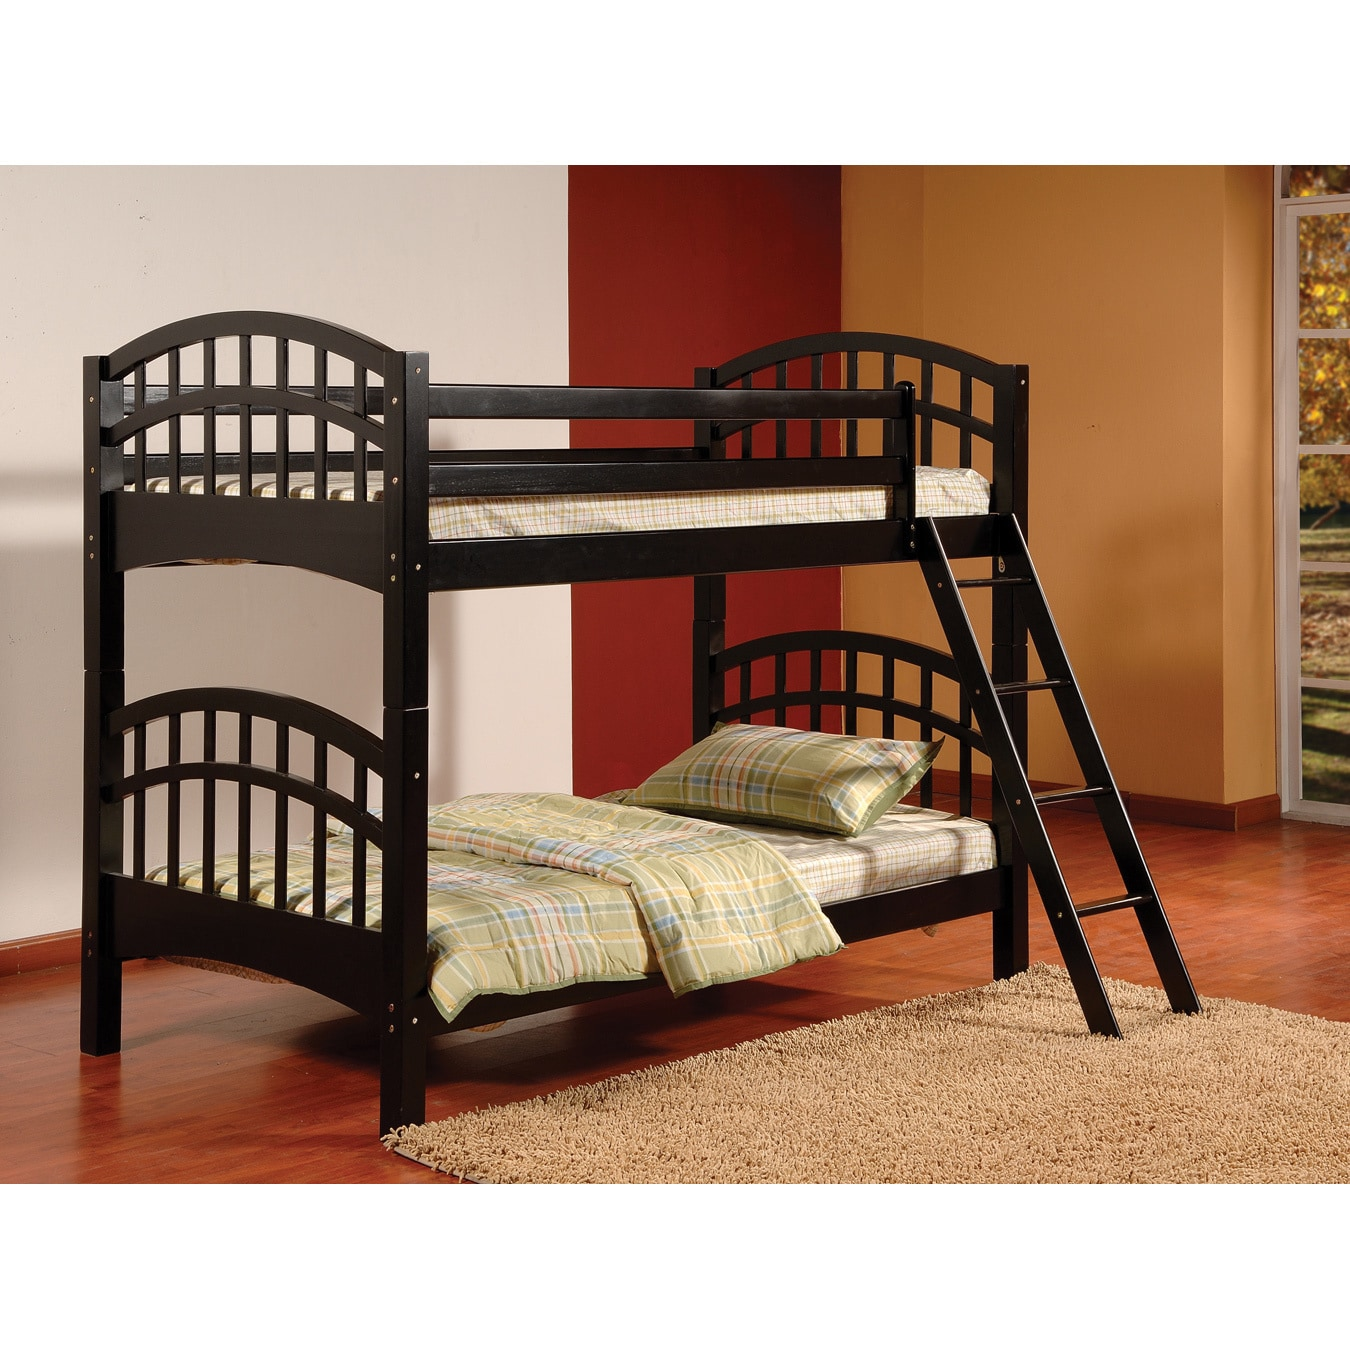 Twin/Twin Wood Bunk Bed with Arched Design (Black Finish)